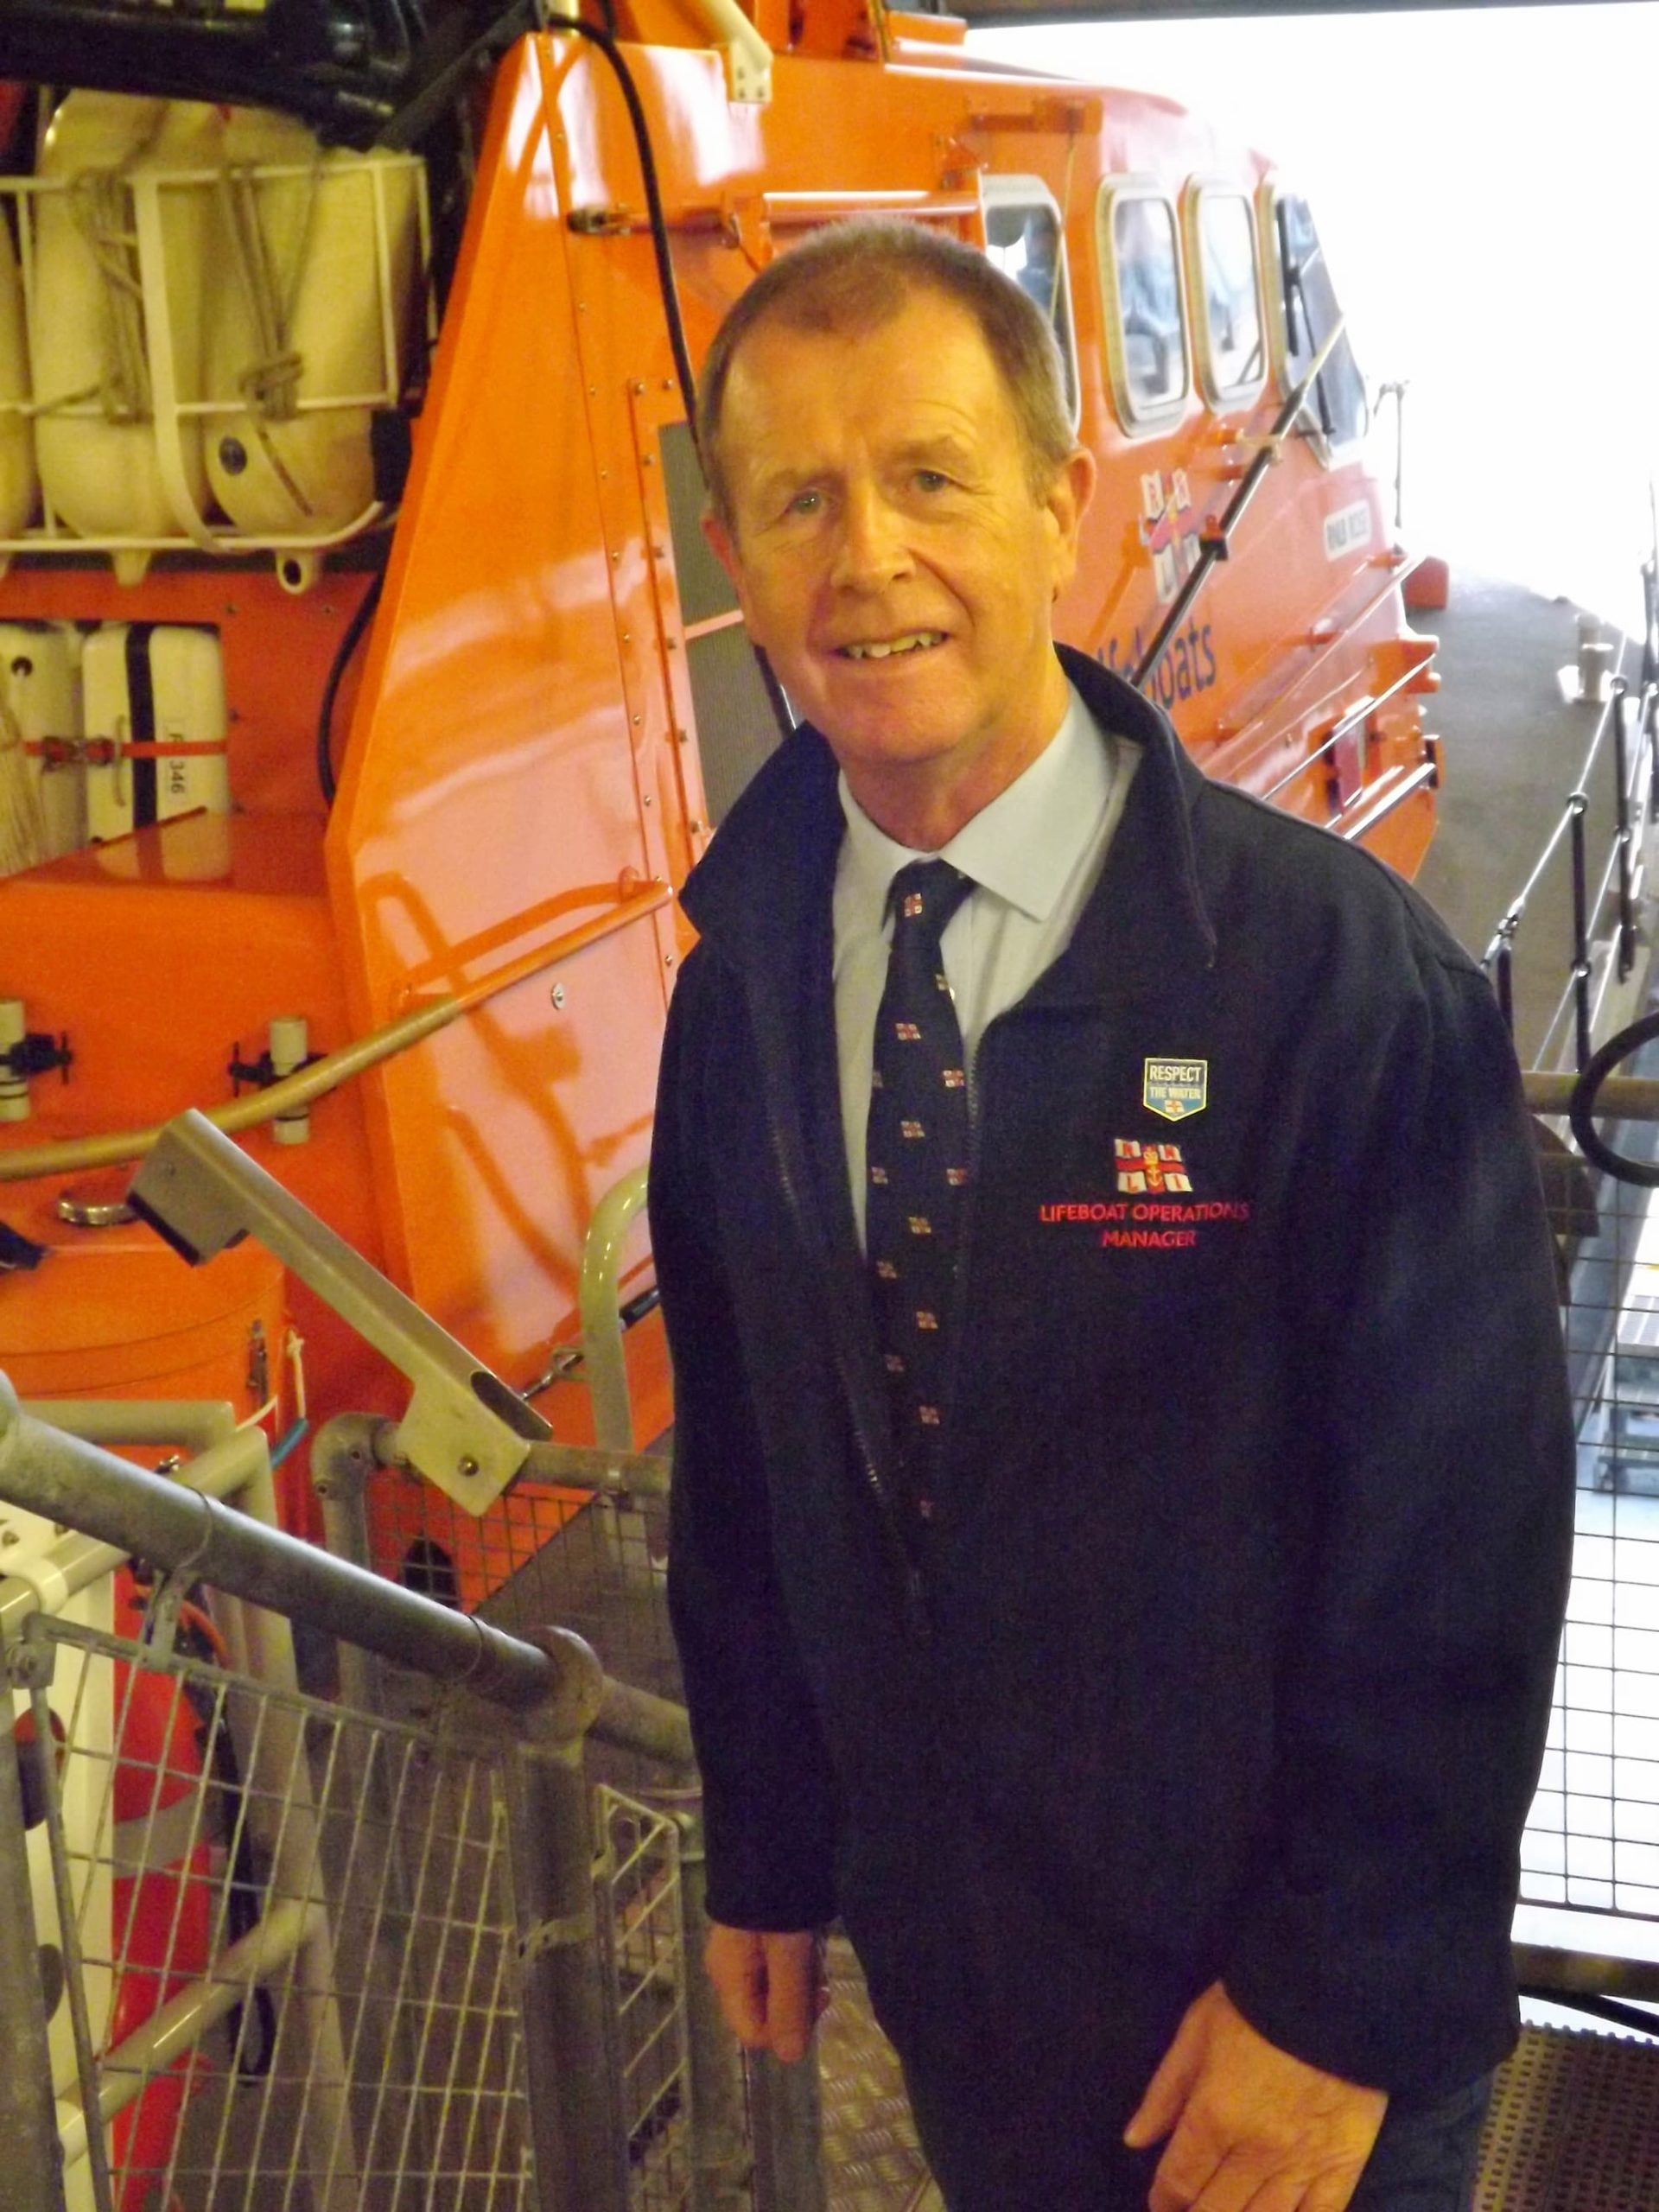 Edward Nuzum, volunteer Lifeboat Operations Manager at The Lizard